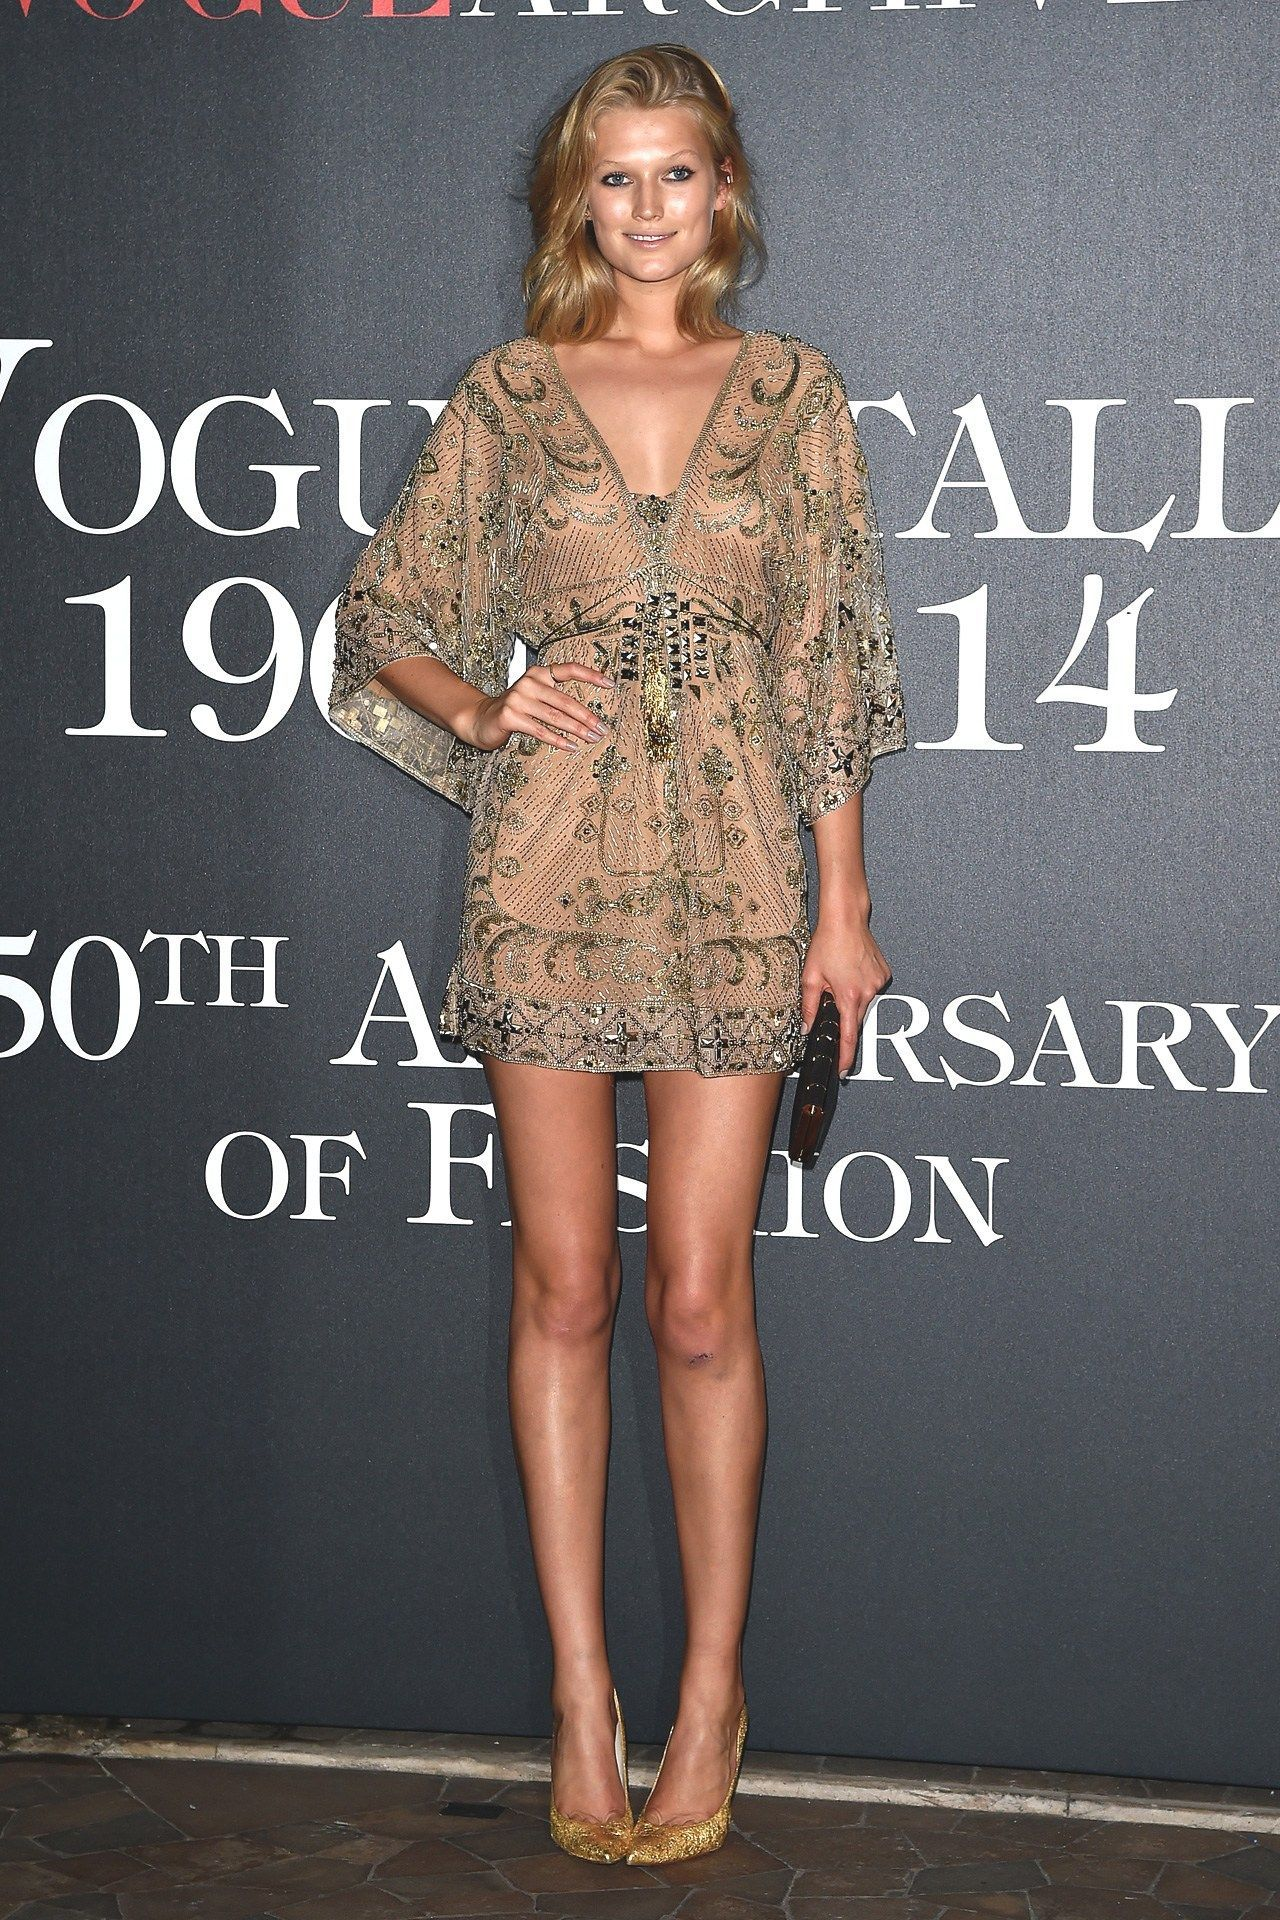 Vogue Italia 50th Anniversary Party, September 21 2014